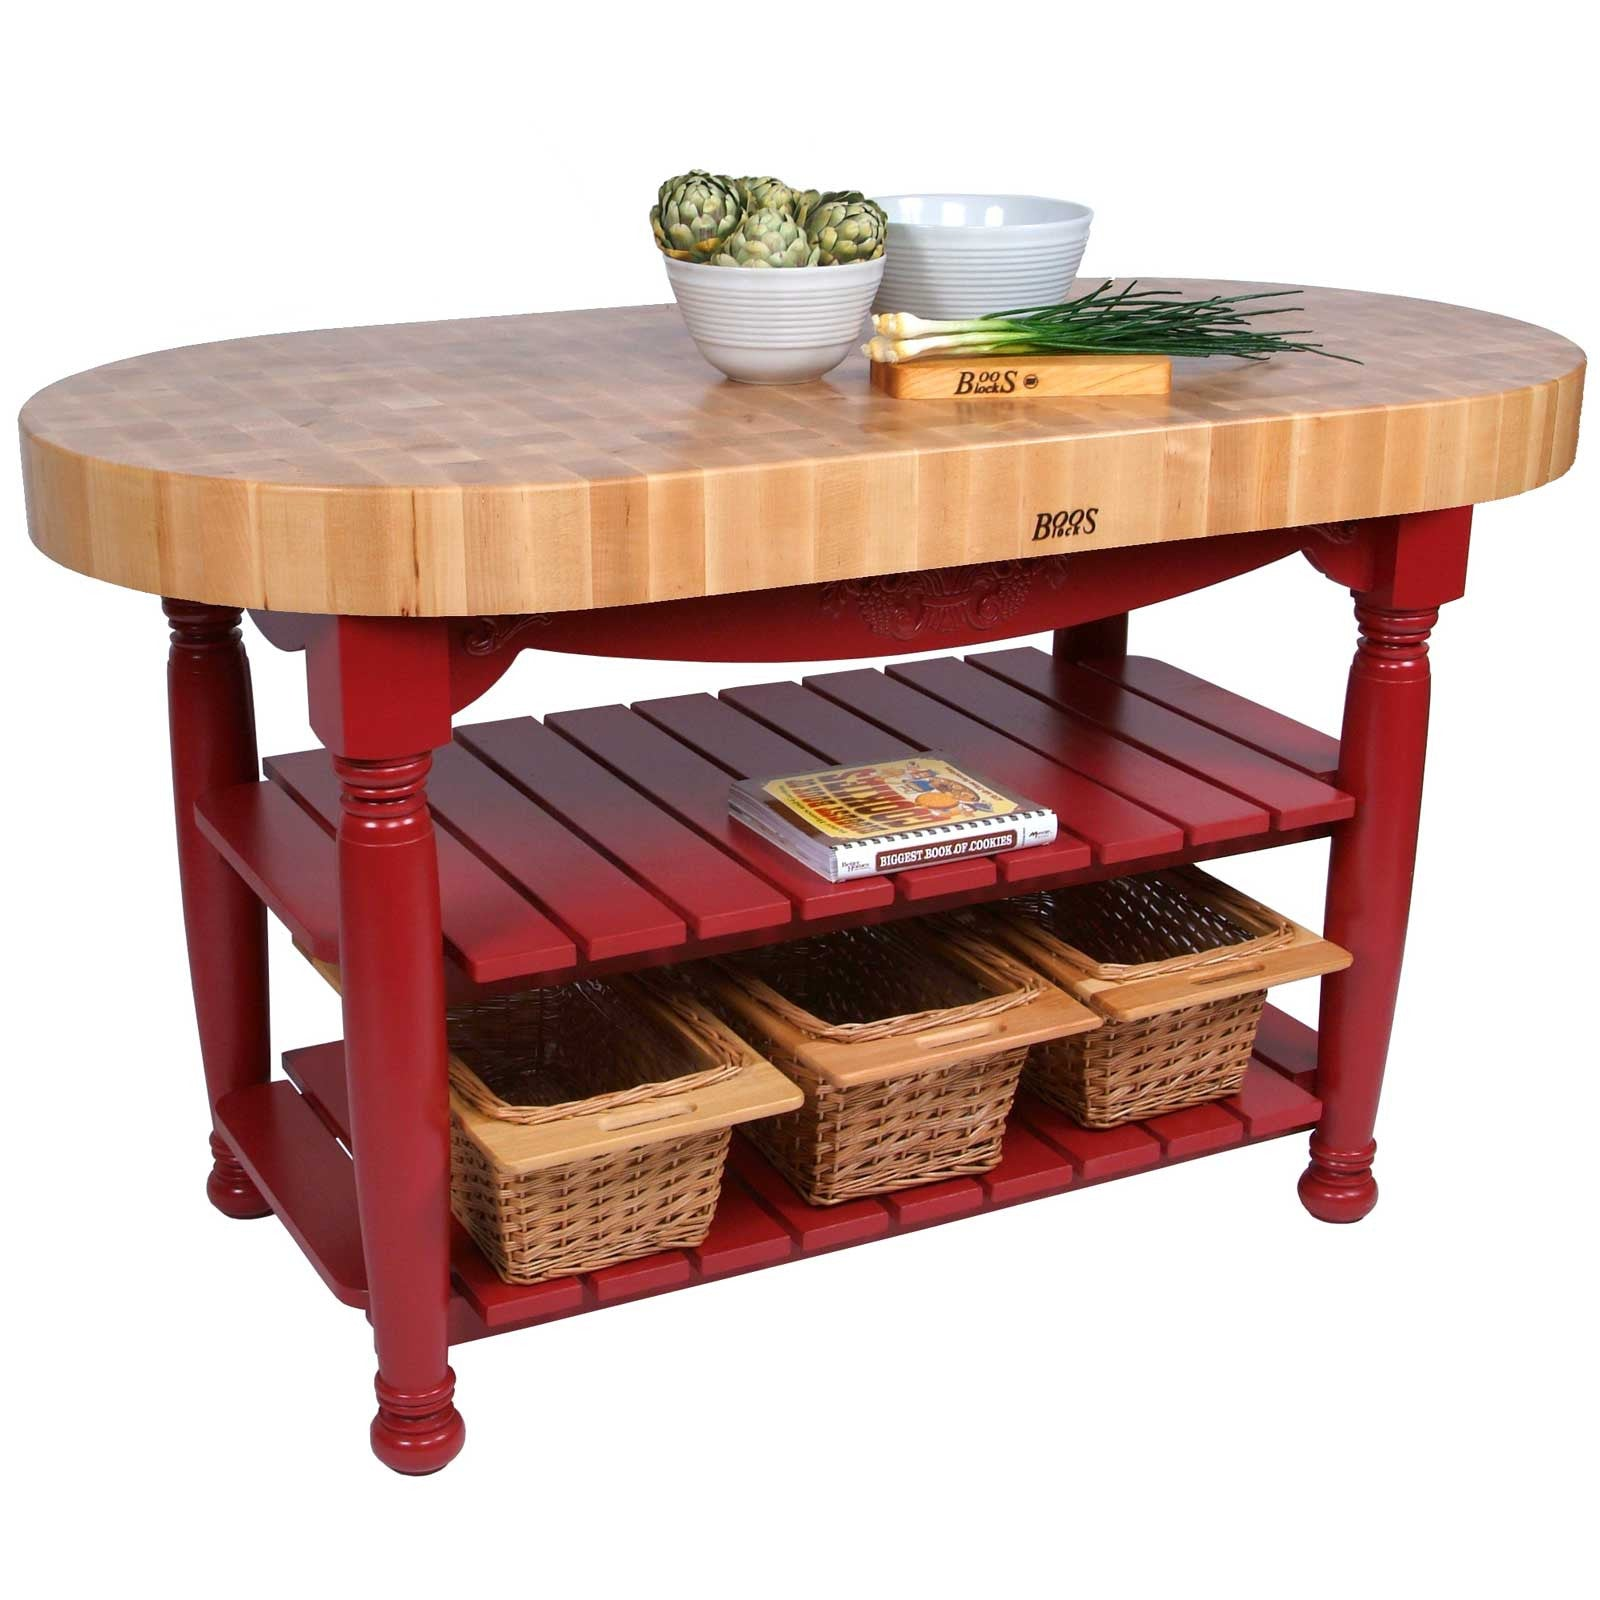 "John Boos CU-HAR 60"" x 30"" x 4"" Maple Top Harvest Table"